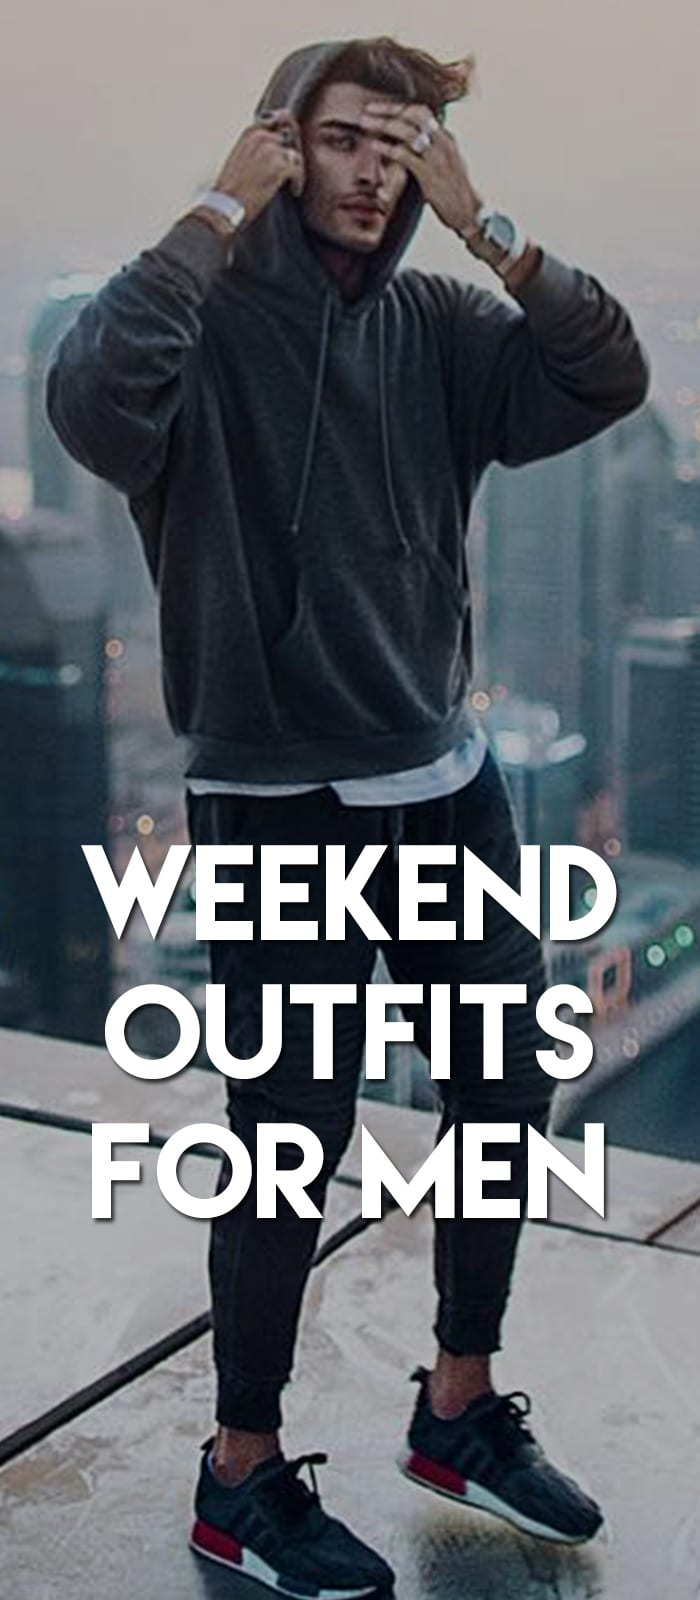 Weekend-Outfits-For-Men.